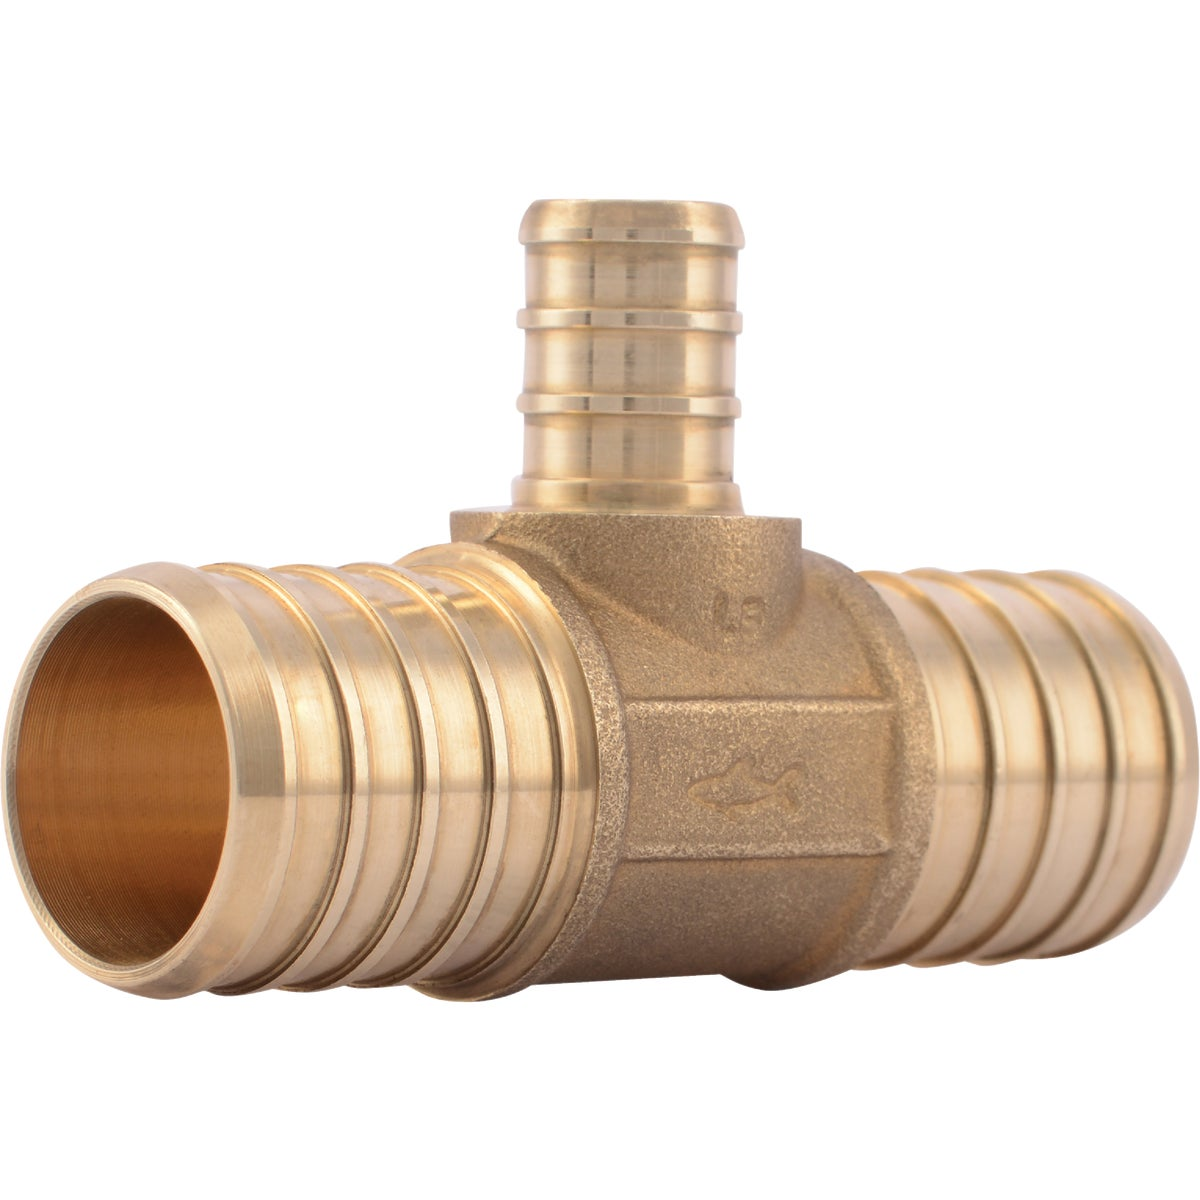 "1X1X1/2""CF BRASS TEE - LFP-1142 by Watts Regulator Co"